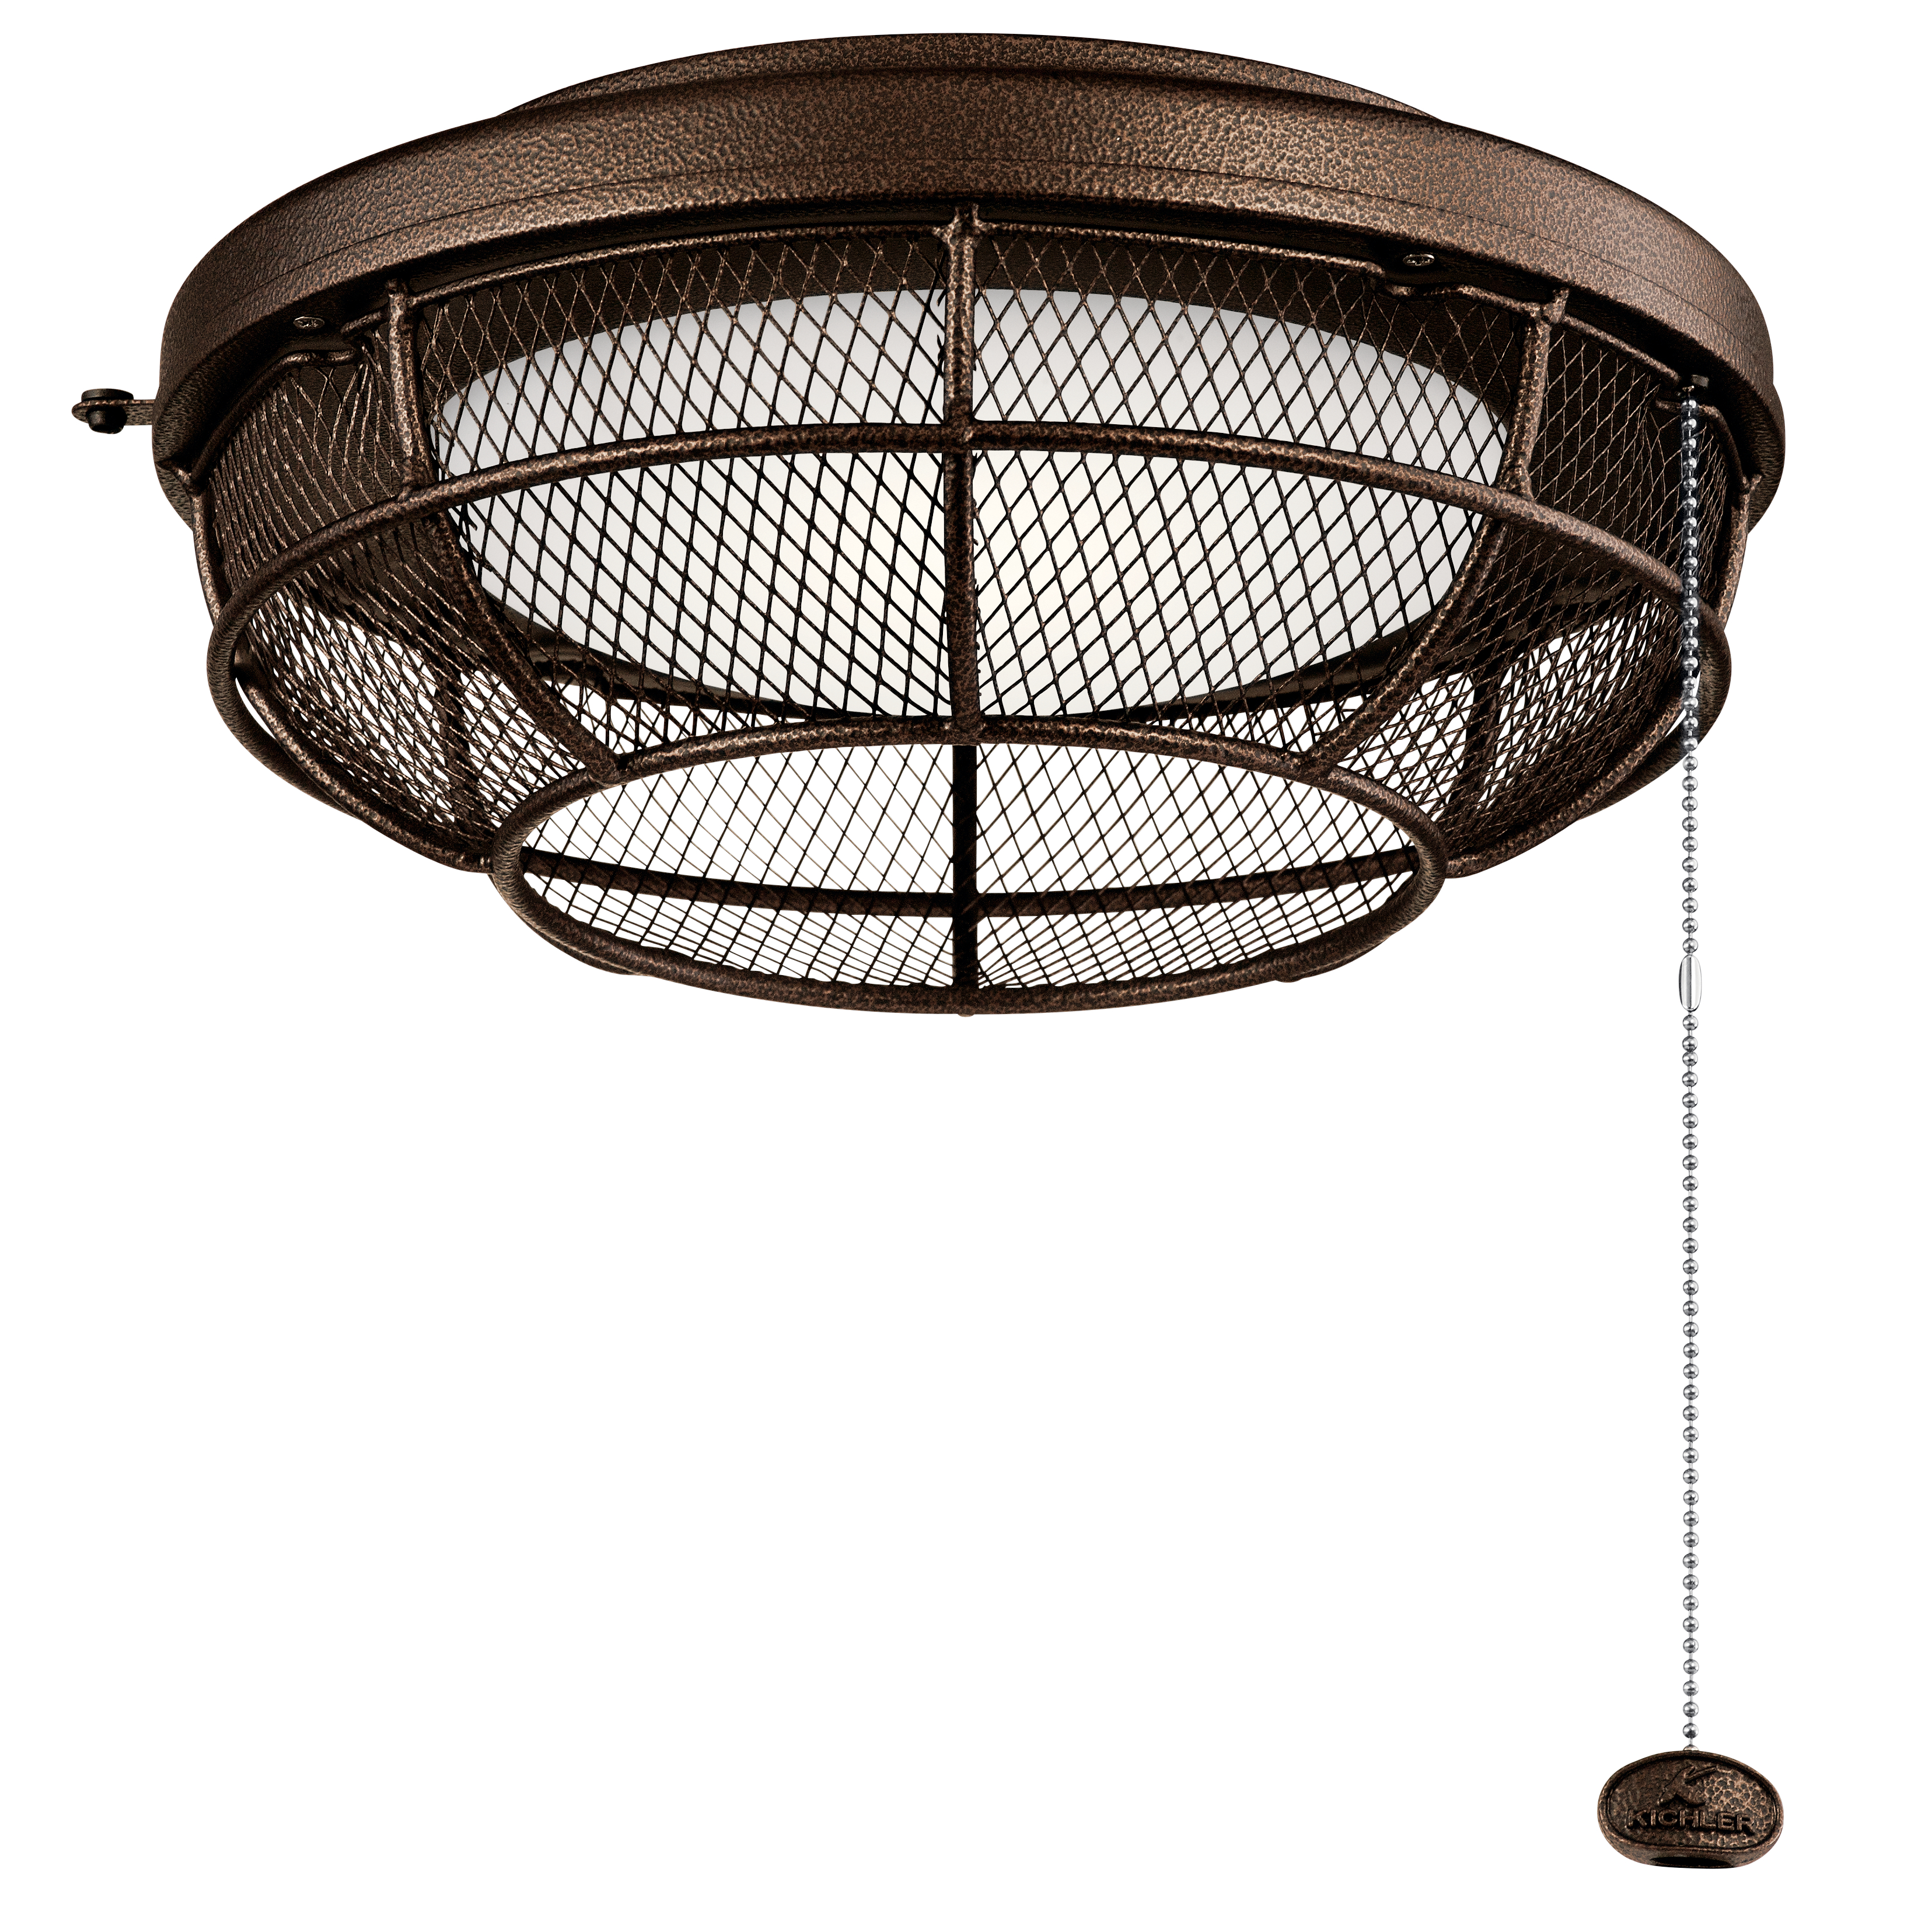 Kichler Outdoor Wet LED Mesh Light Kit with Etched Cased Opal Shade - Weathered Copper Powder Coat (380952WCP)